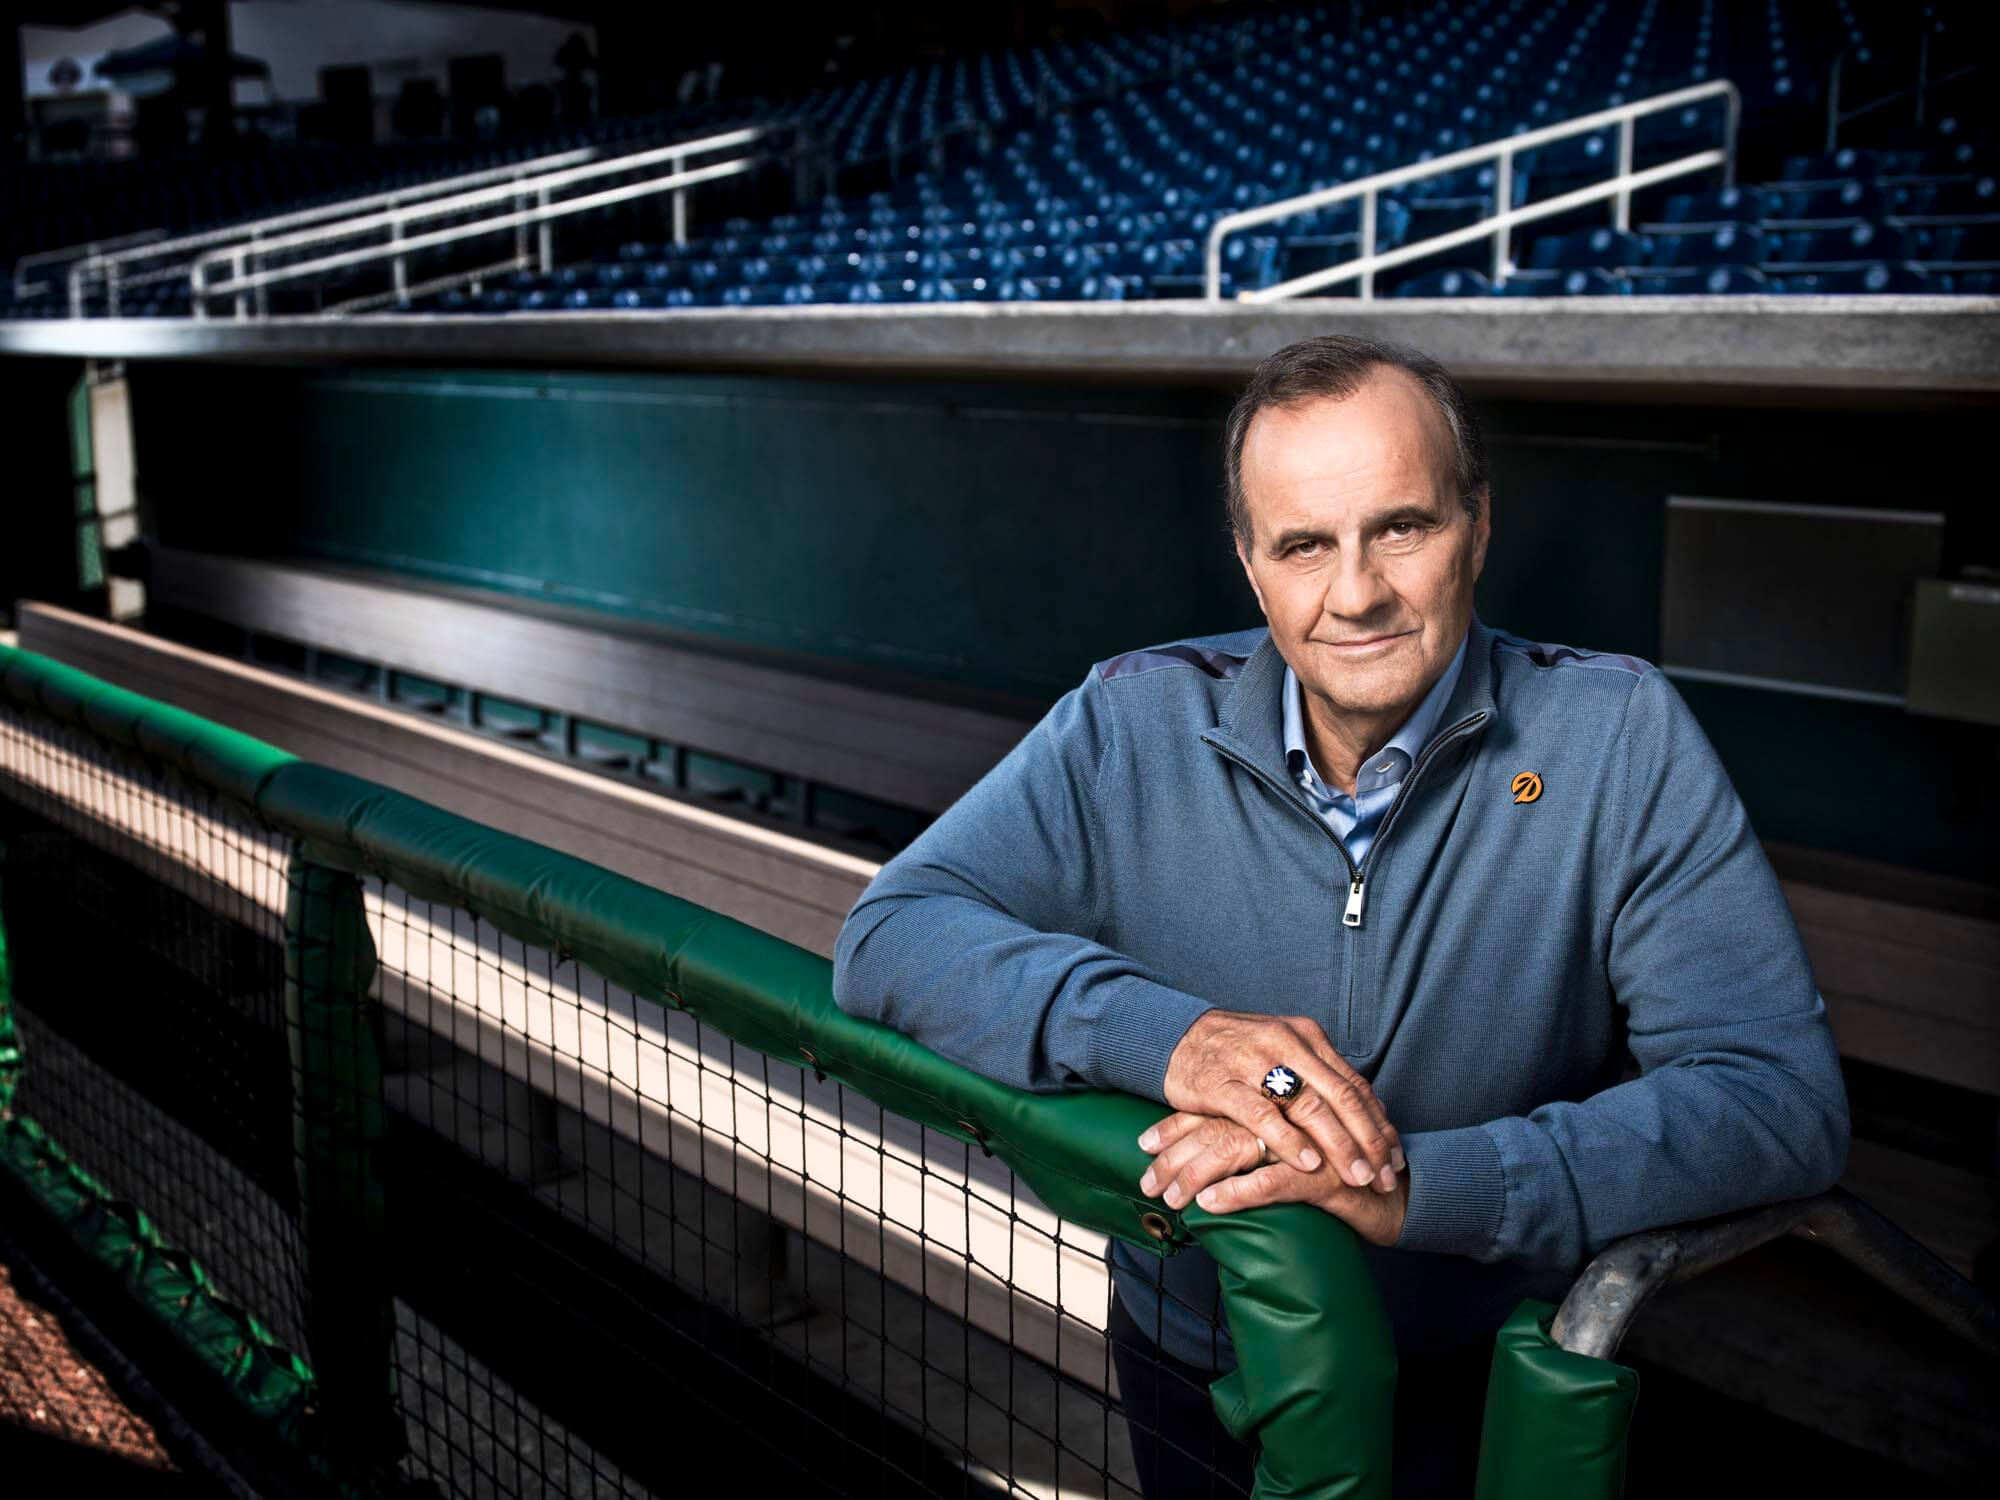 Joe Torre by professional photographer Michael Grecco